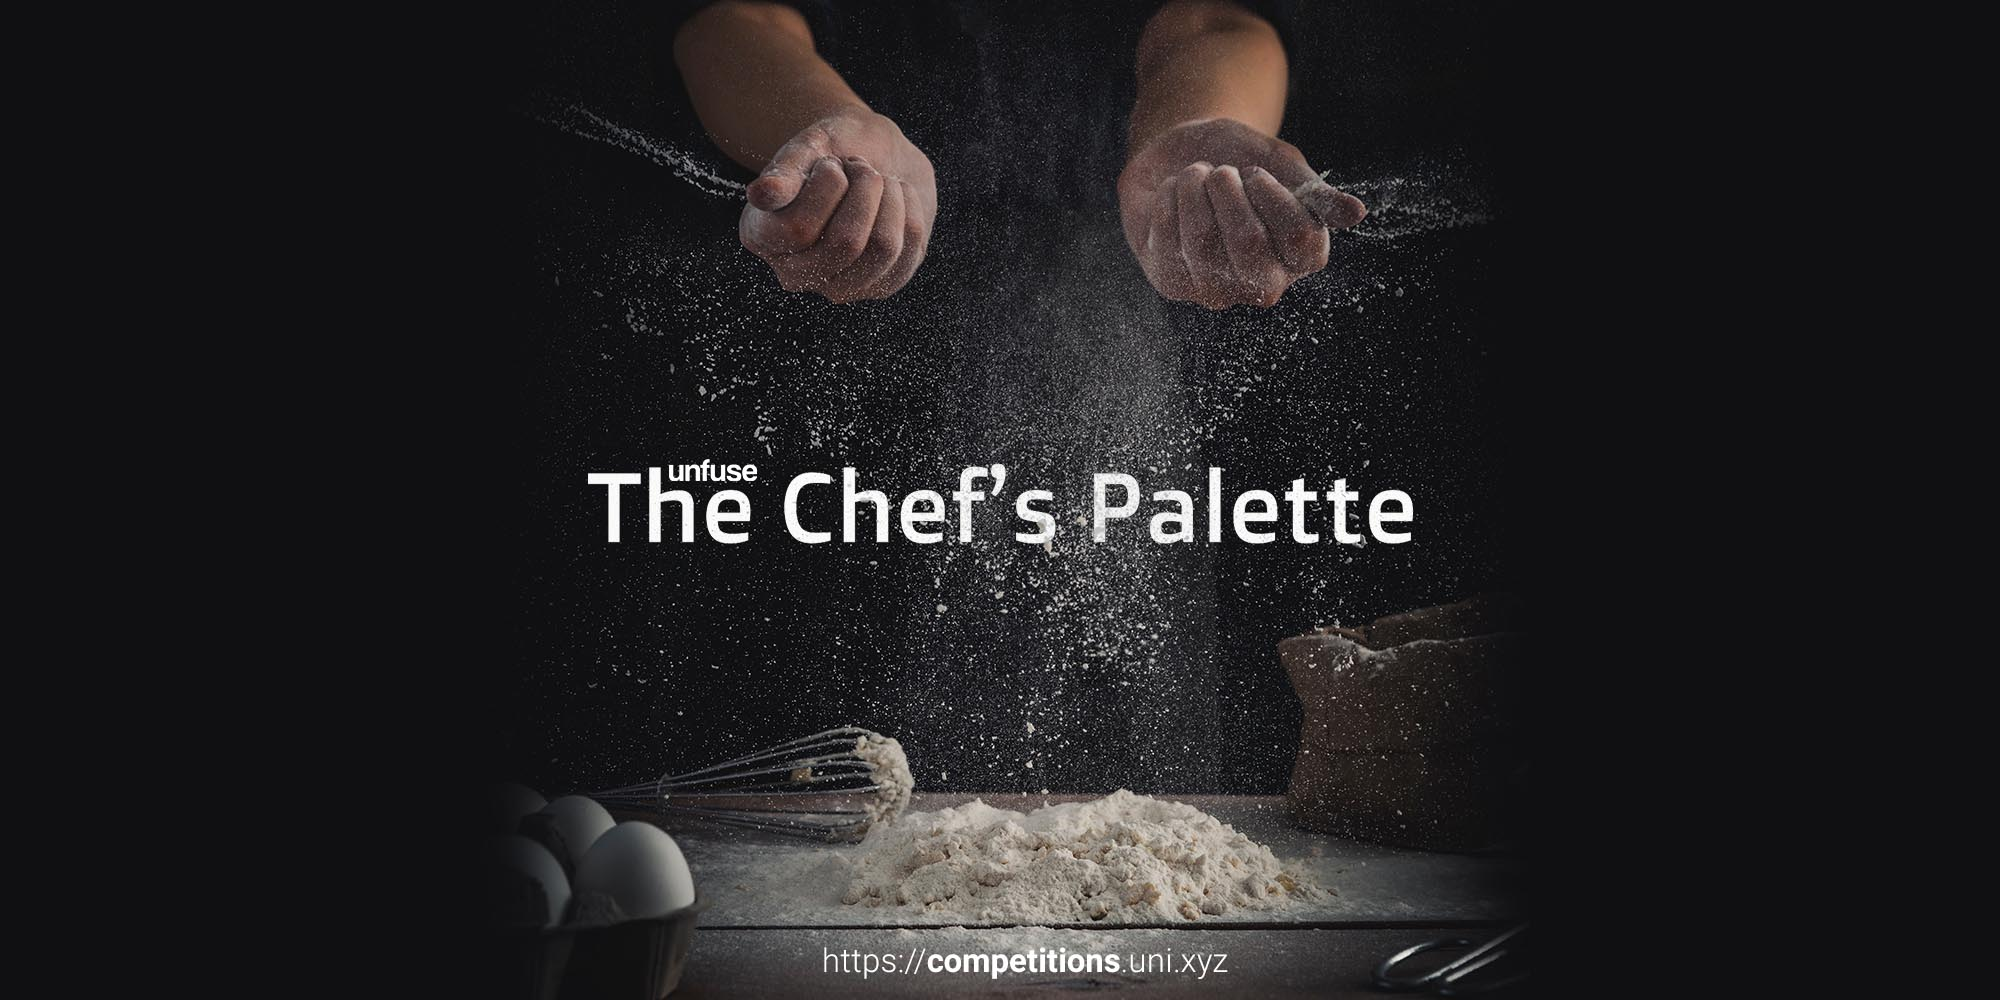 The Chef's Palette